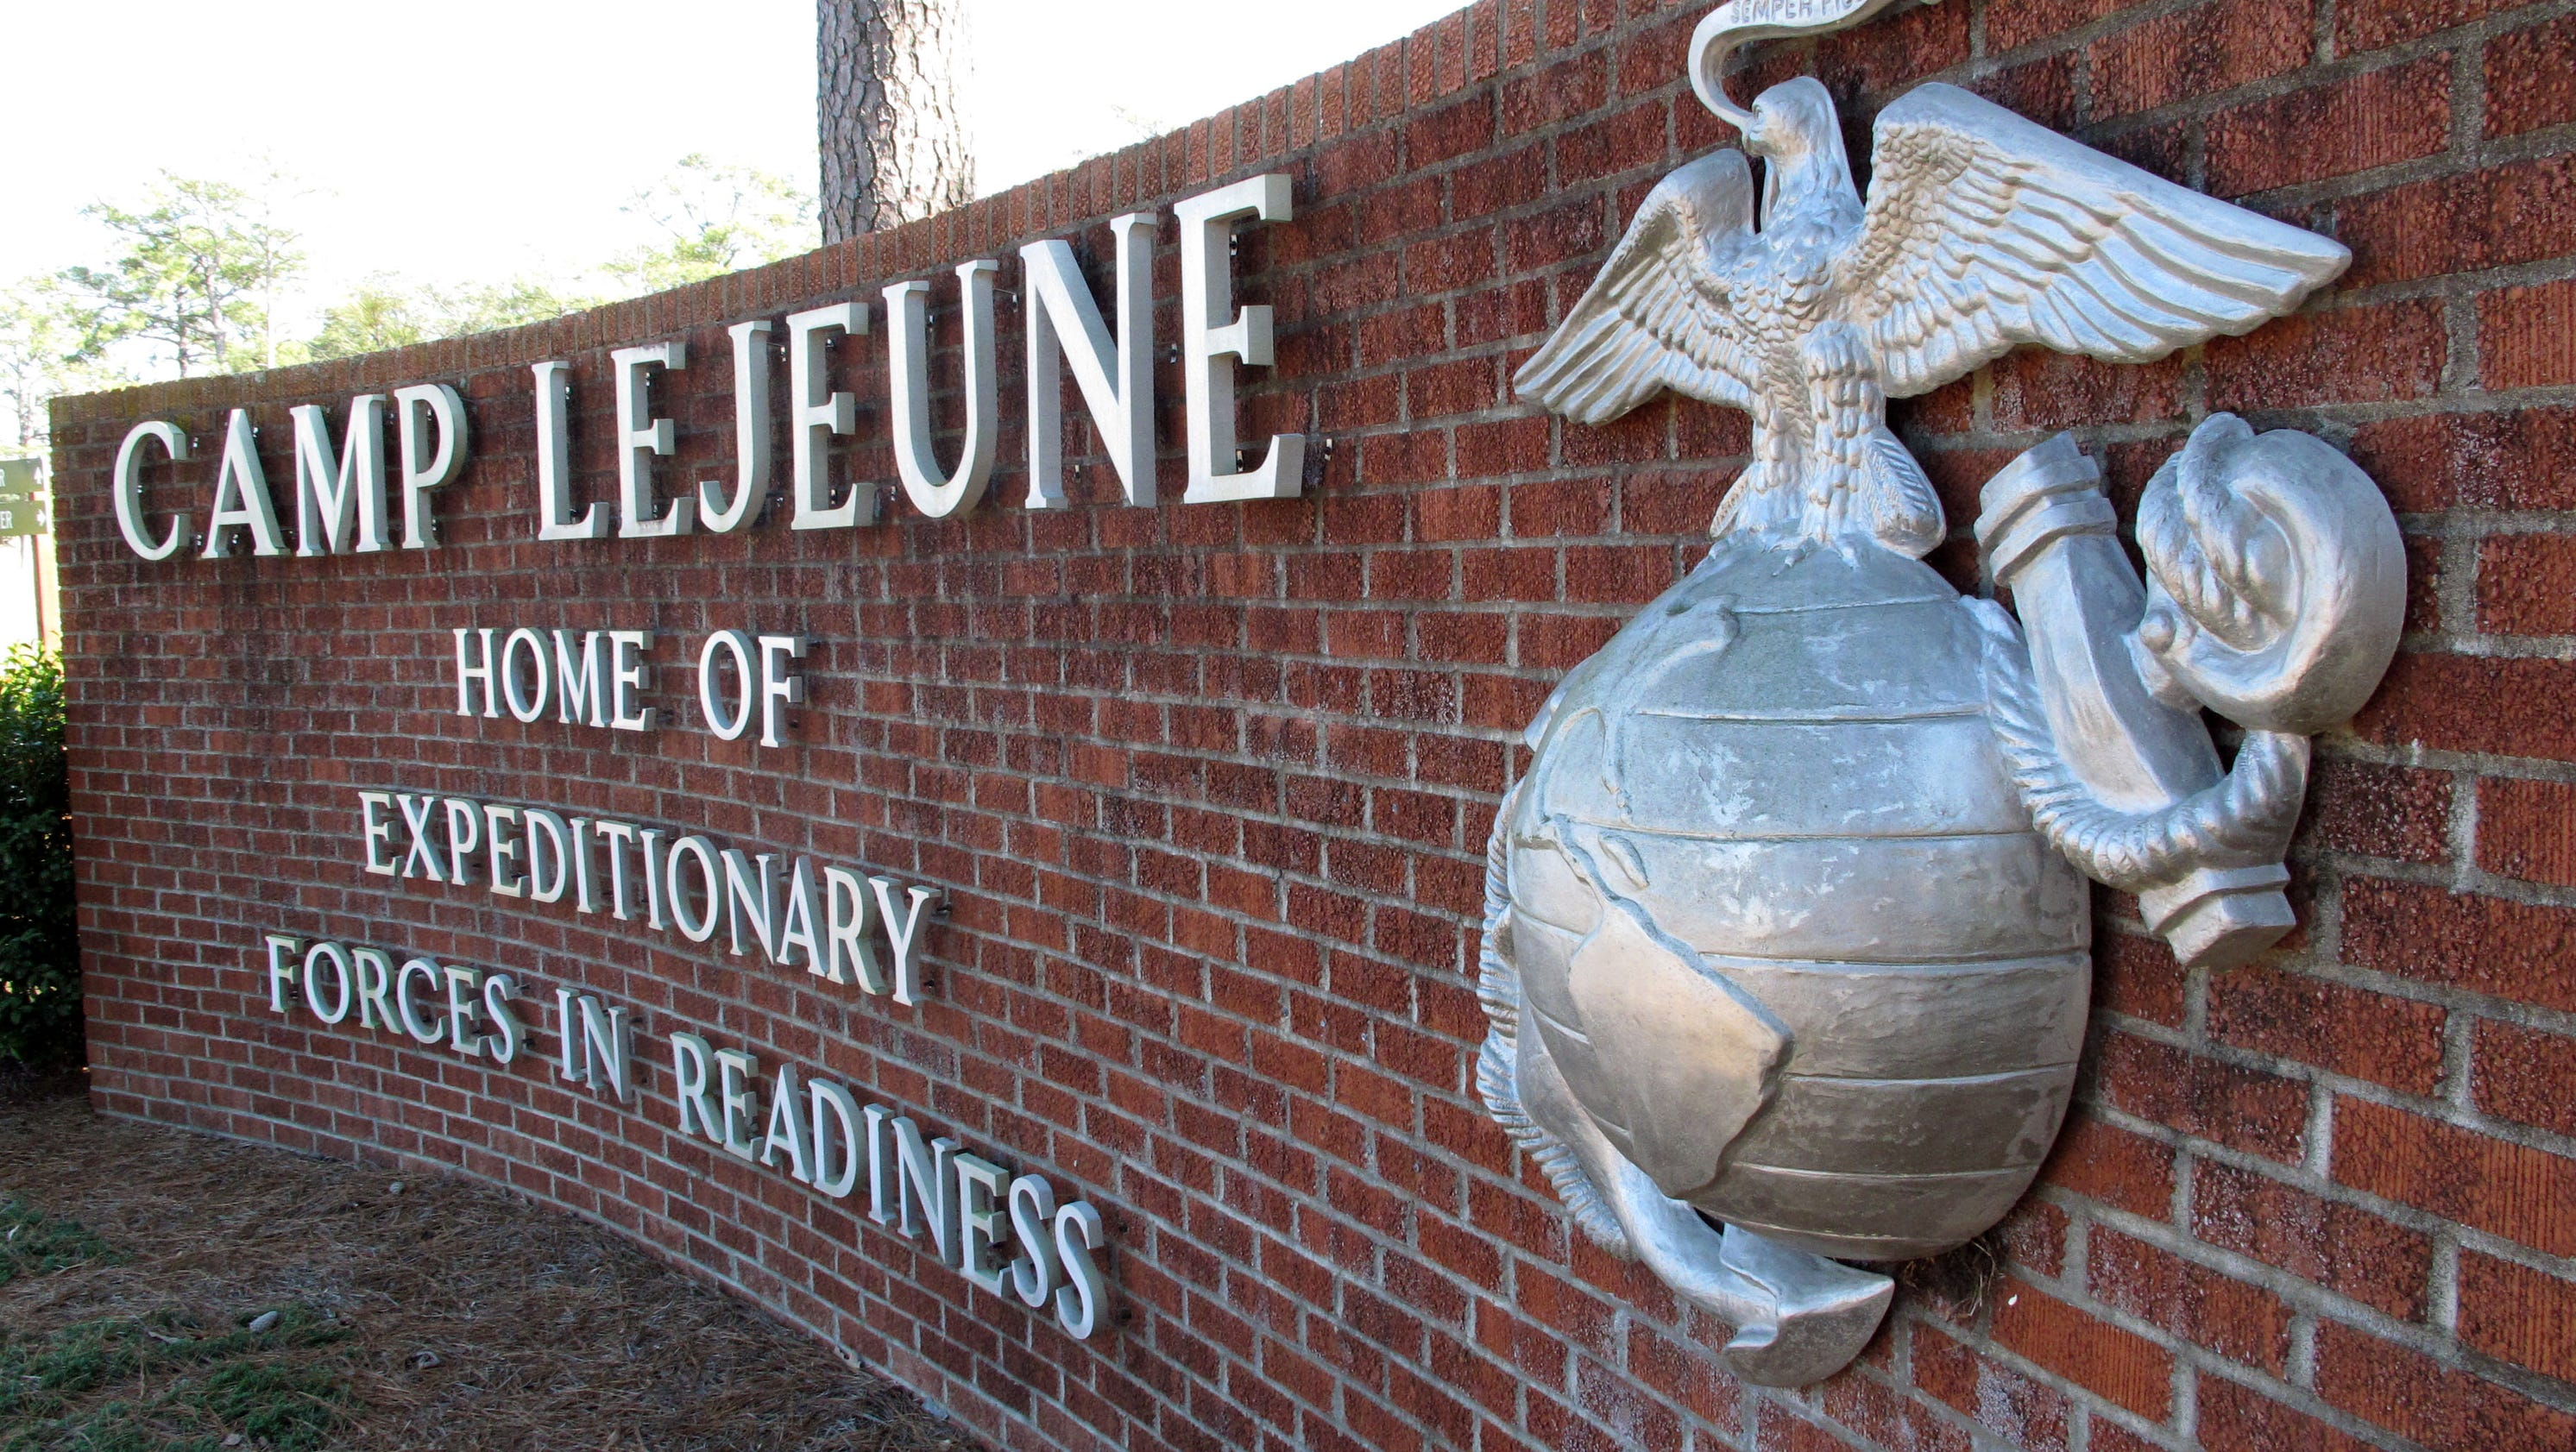 Marine guard shot to death by colleague at n c base